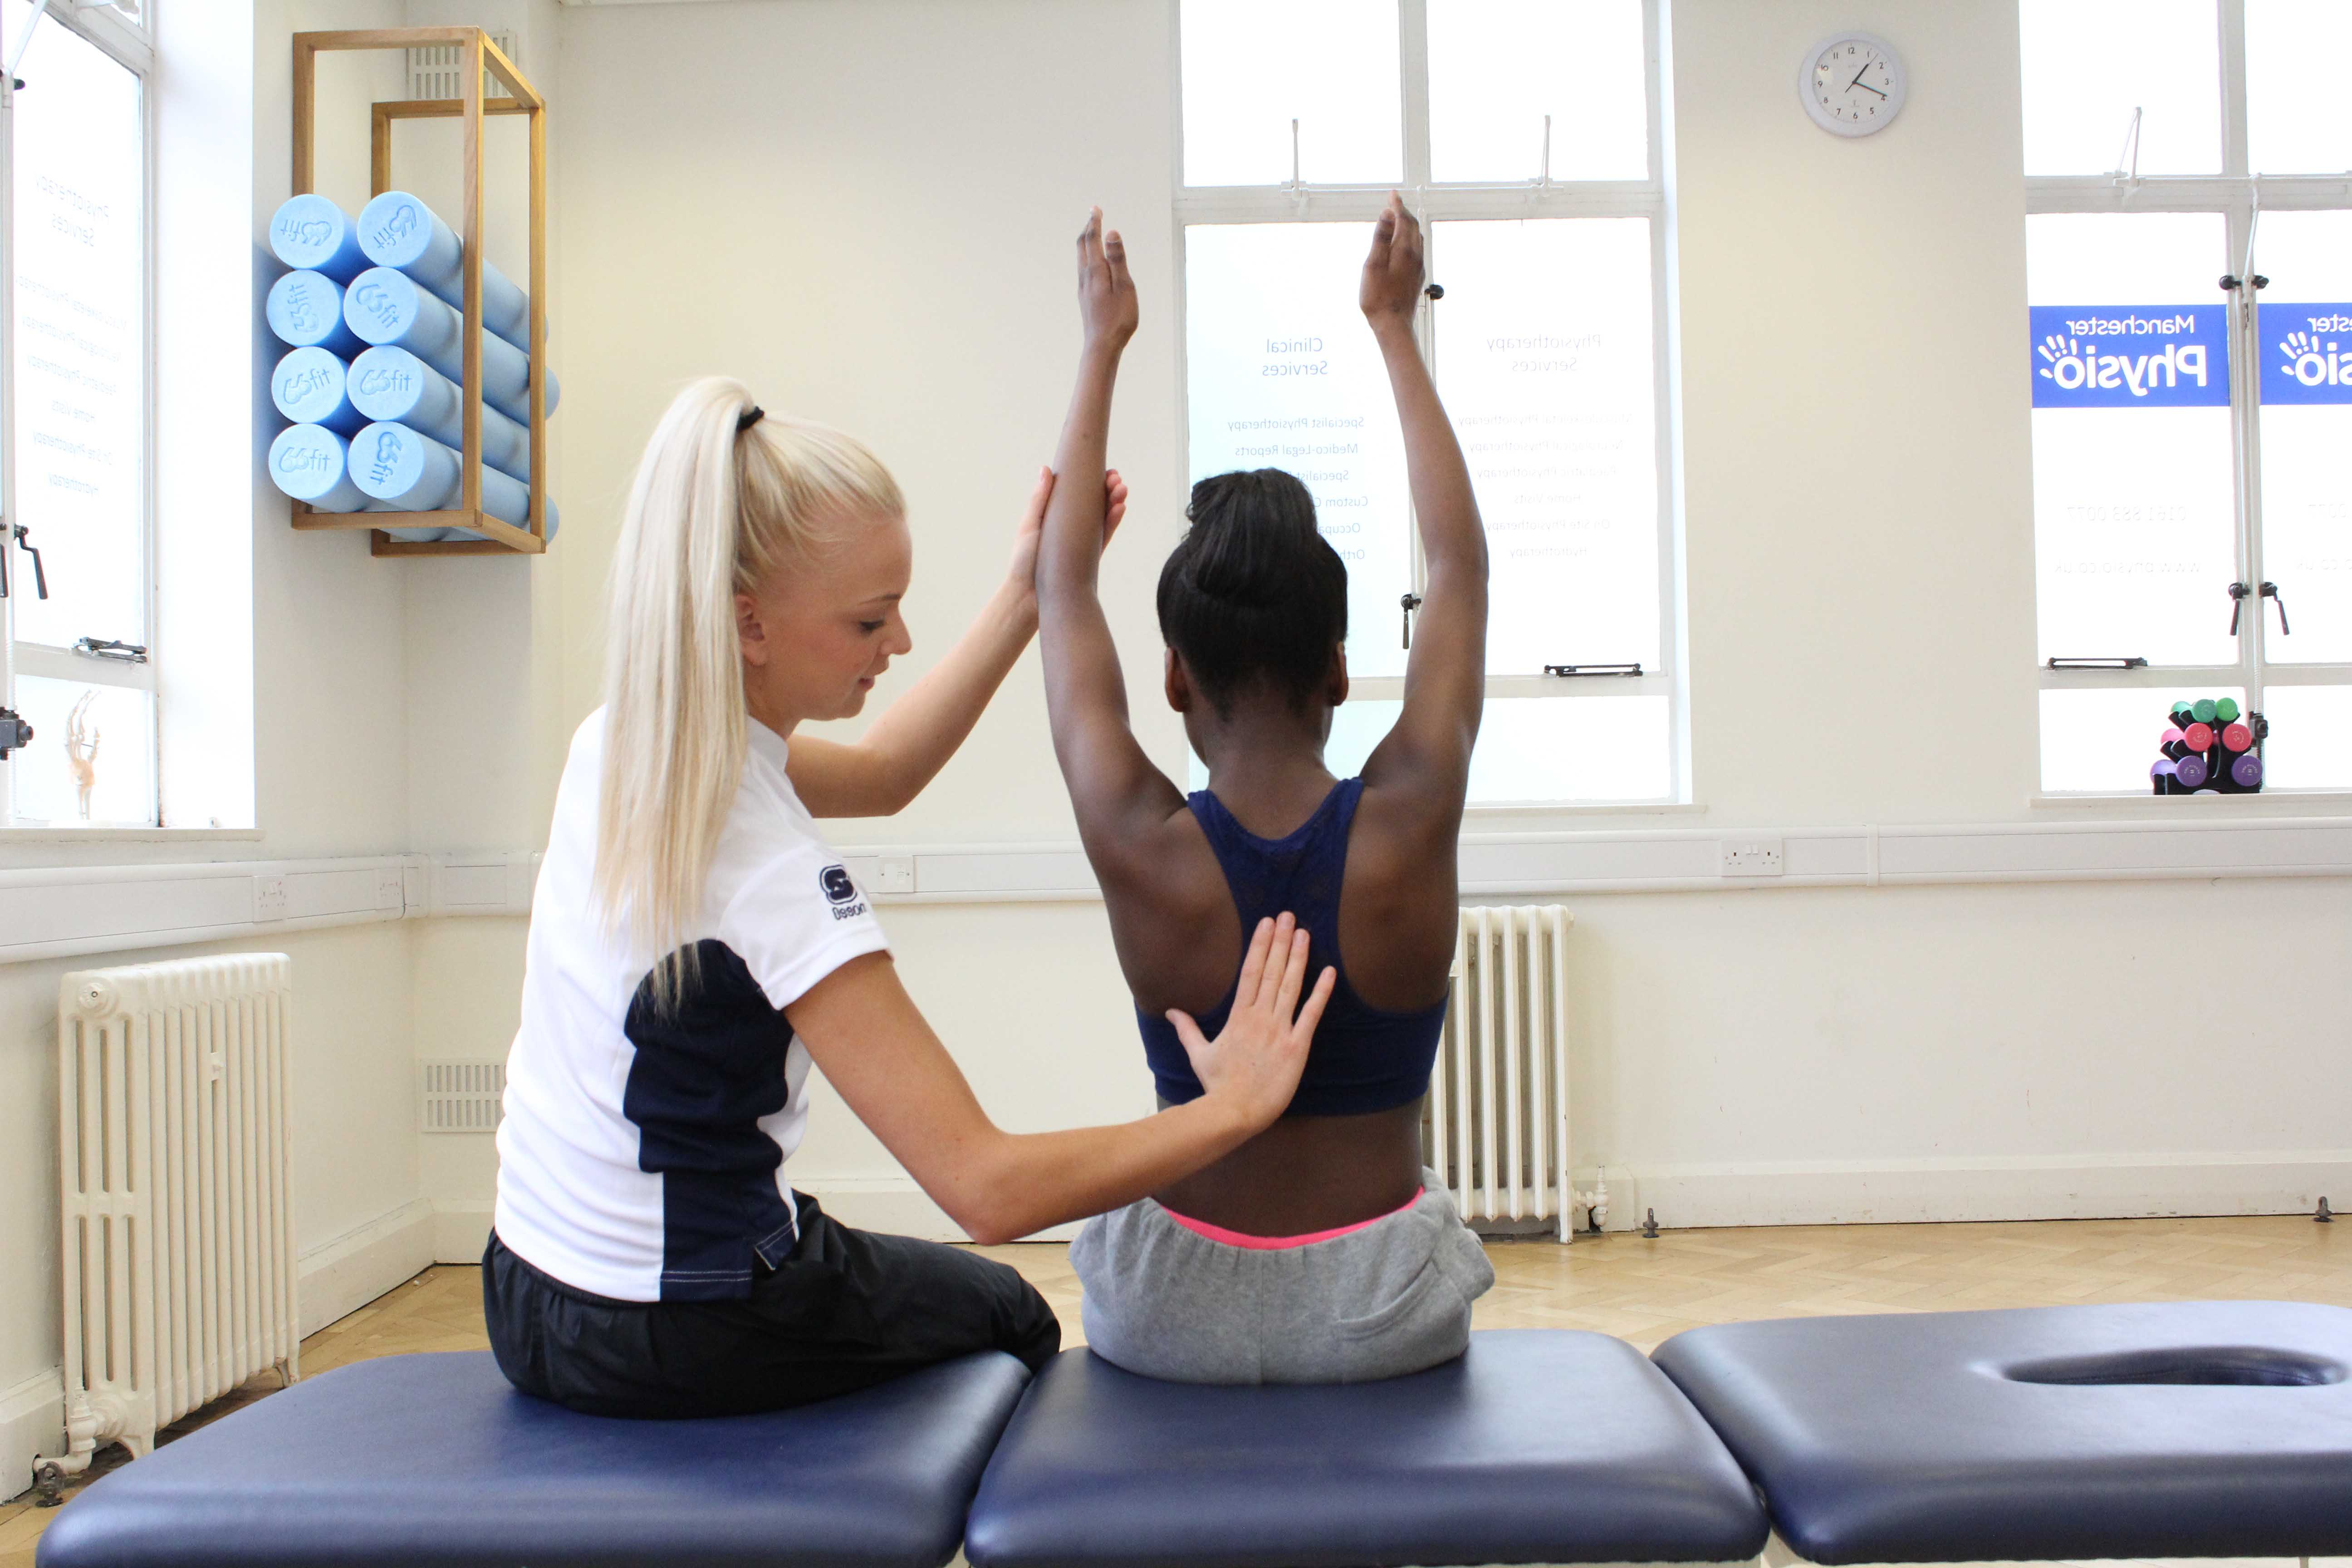 Trigger point massage of the lower back muscles by specialist MSK therapist